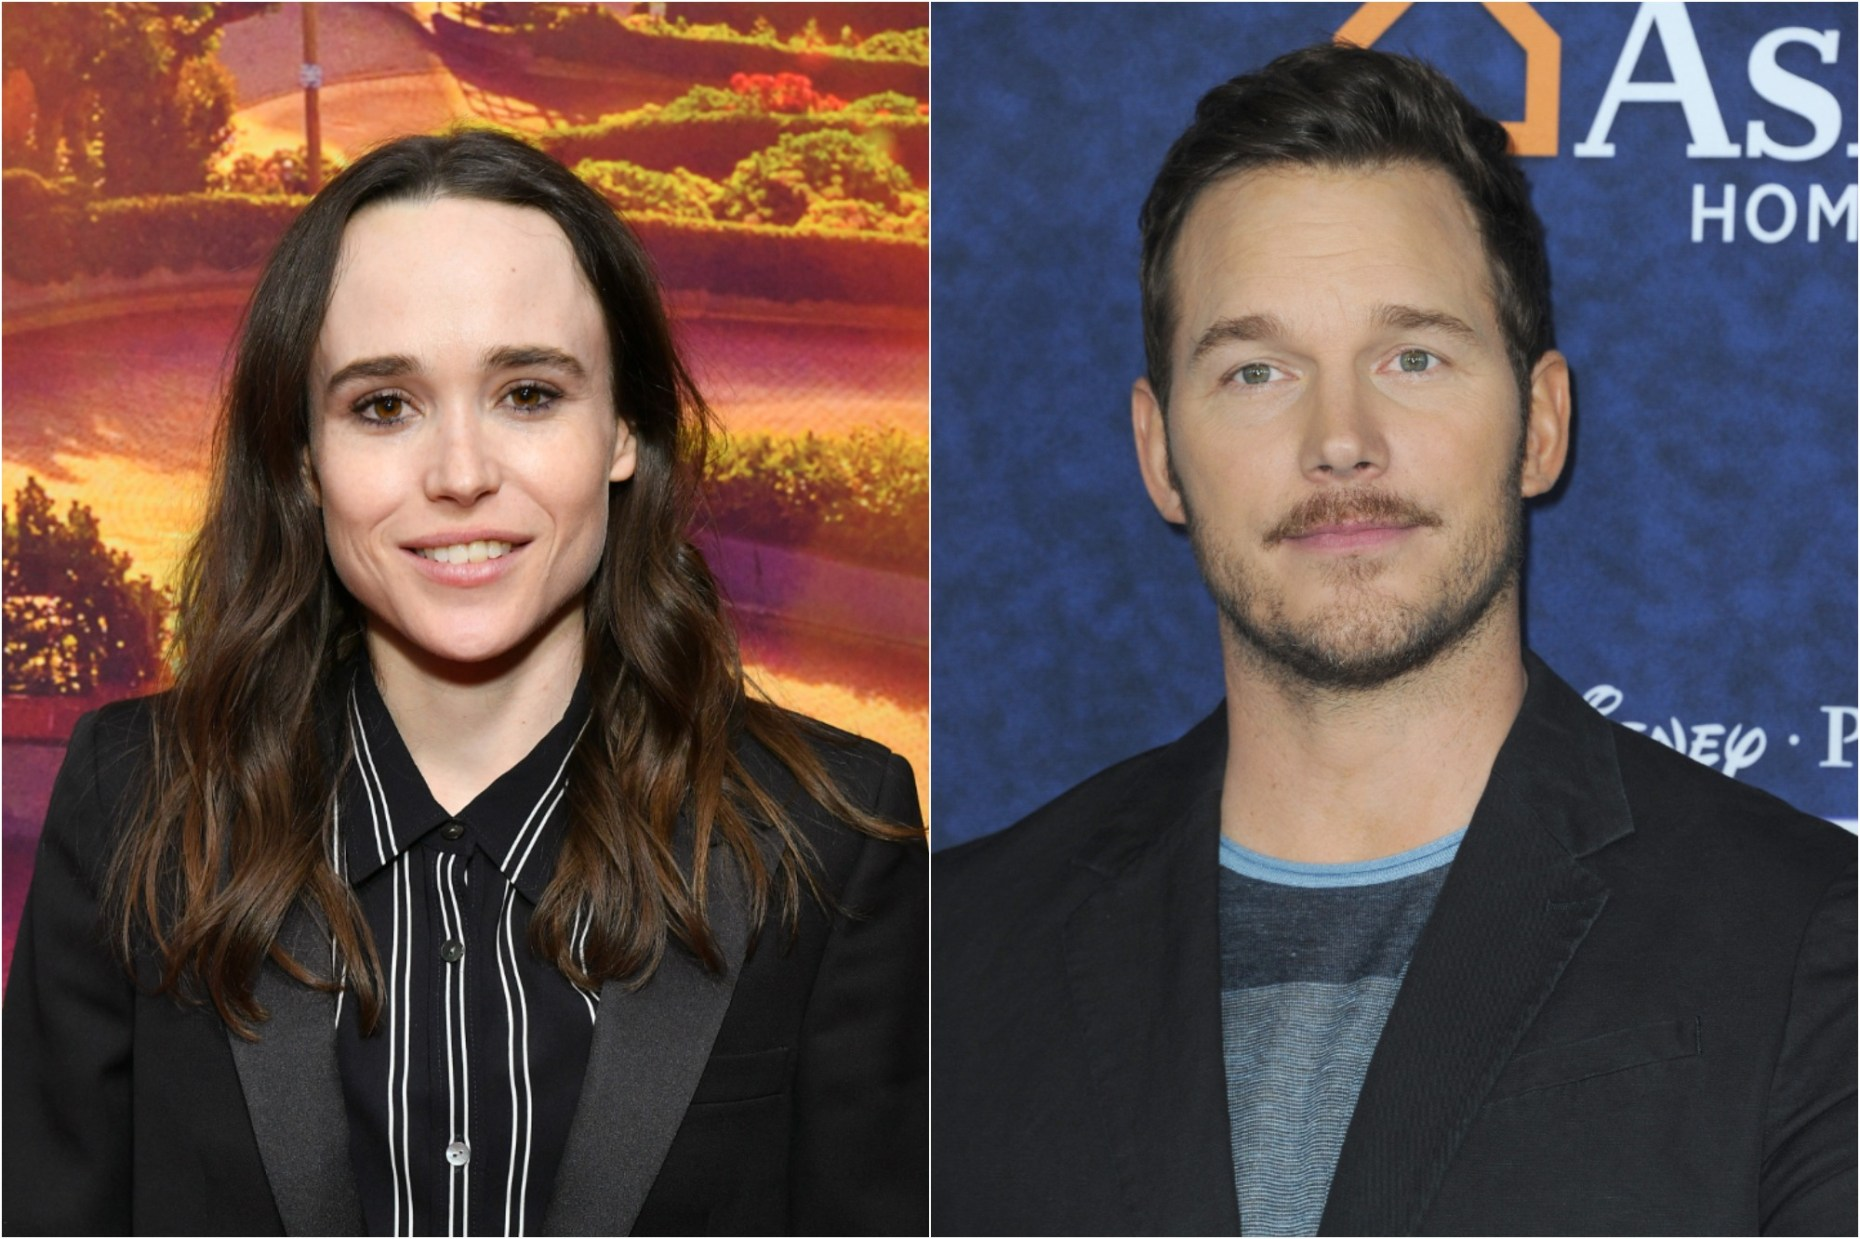 Ellen Page at the New York premiere of 'The Tales of the City' at The Metrograph on June 03, 2019 / Chris Pratt at the premiere of Disney And Pixar's 'Onward' at the El Capitan Theater on February 18, 2020